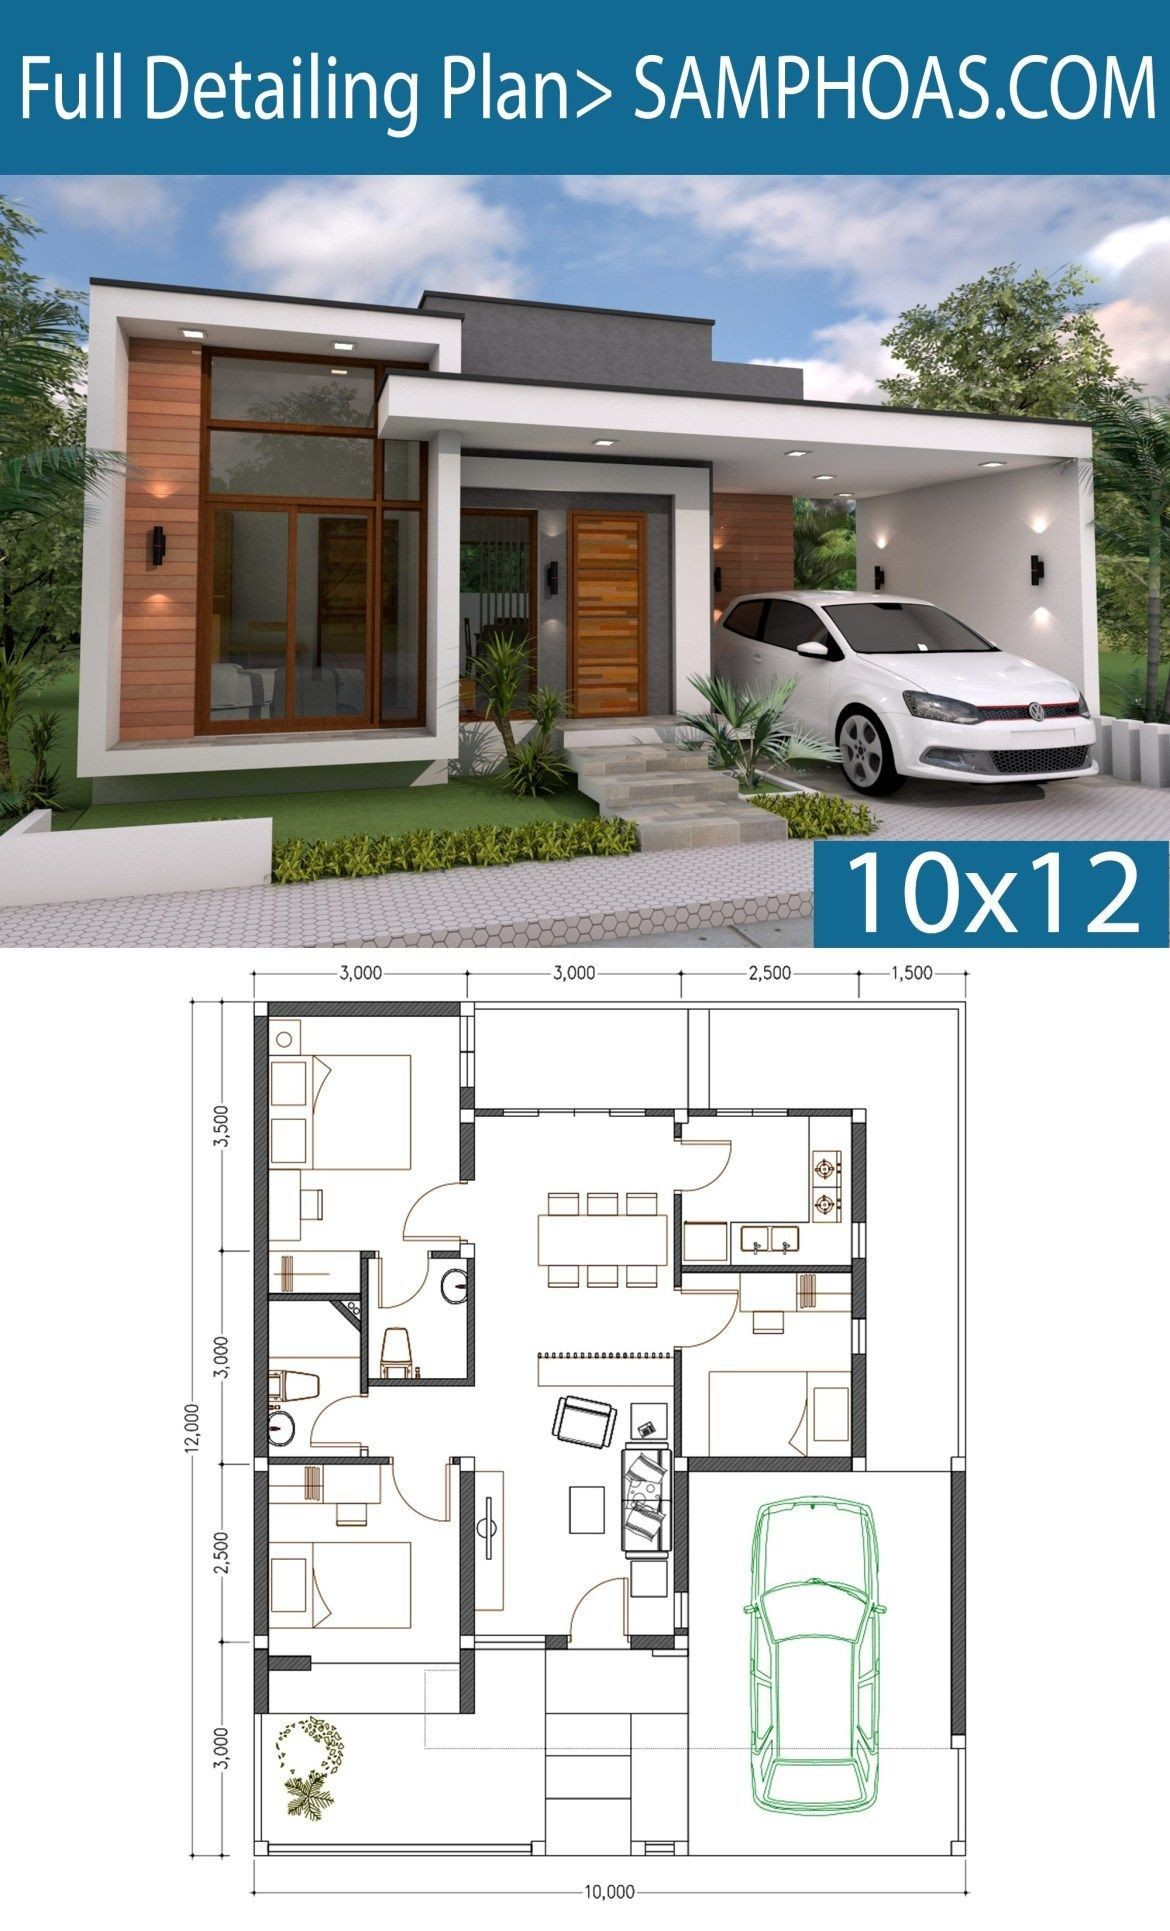 One Story Modern House Designs 3 Bedrooms Home Design Plan 10x12m Rumah Minimalis Arsitektur Rumah Rumah Indah